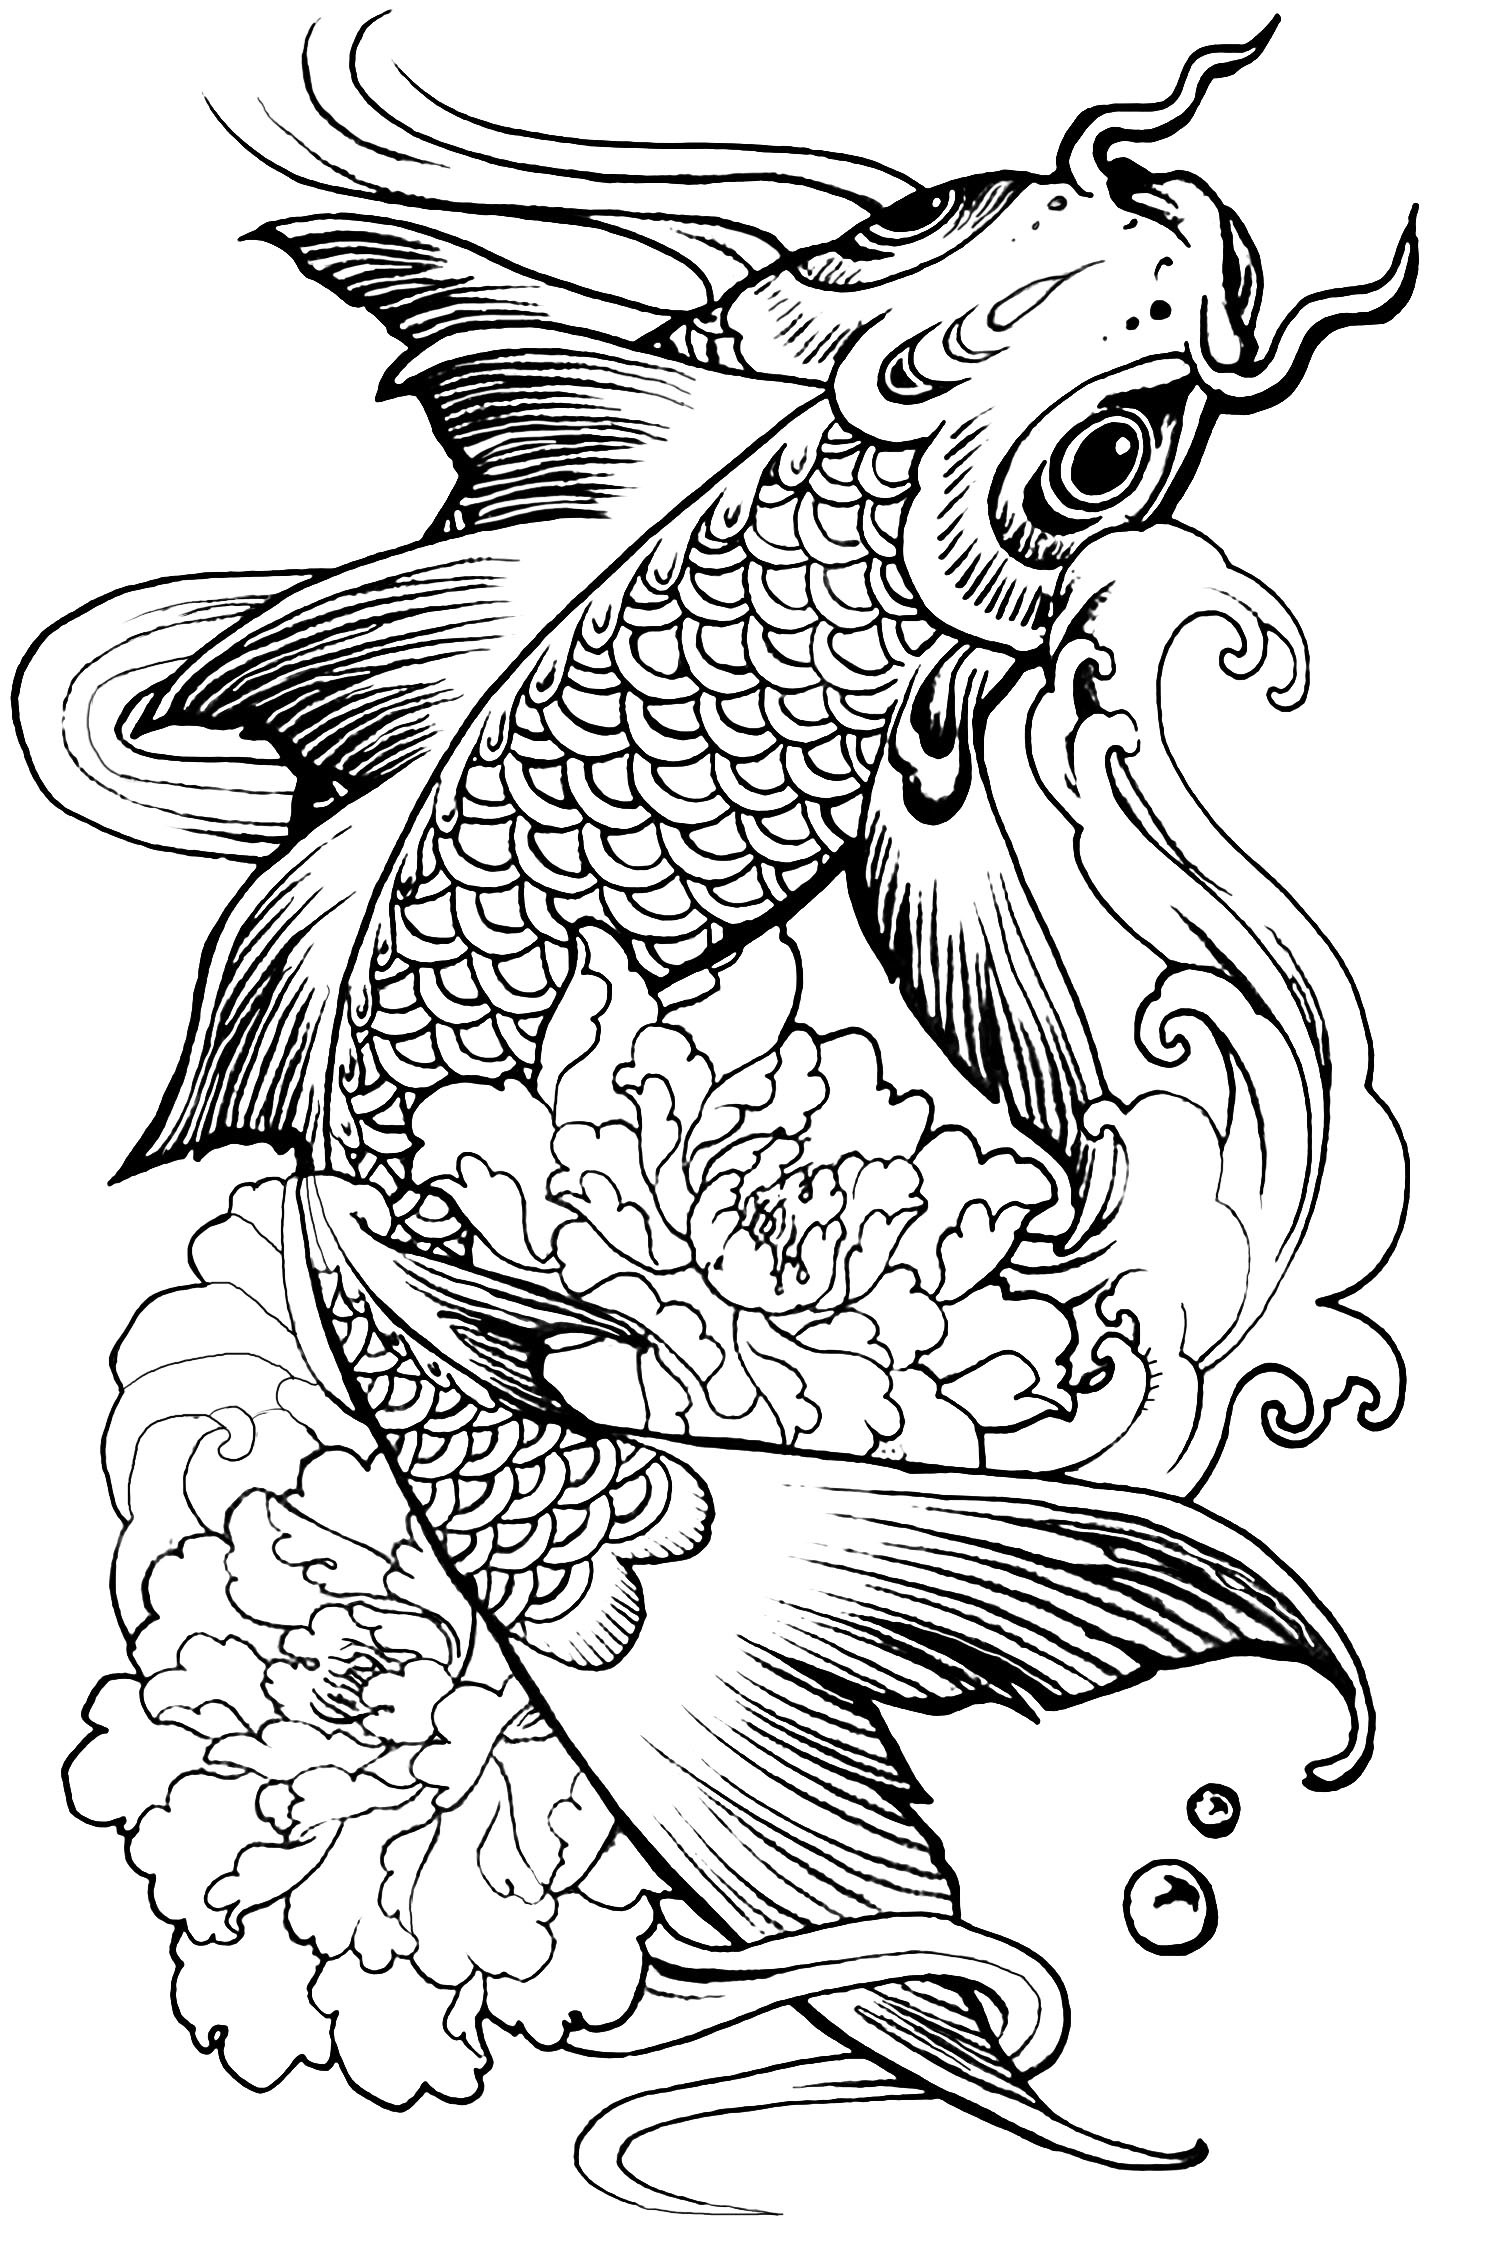 Fish carp - Animals Coloring pages - 100% Mandalas Zen & Anti-stress